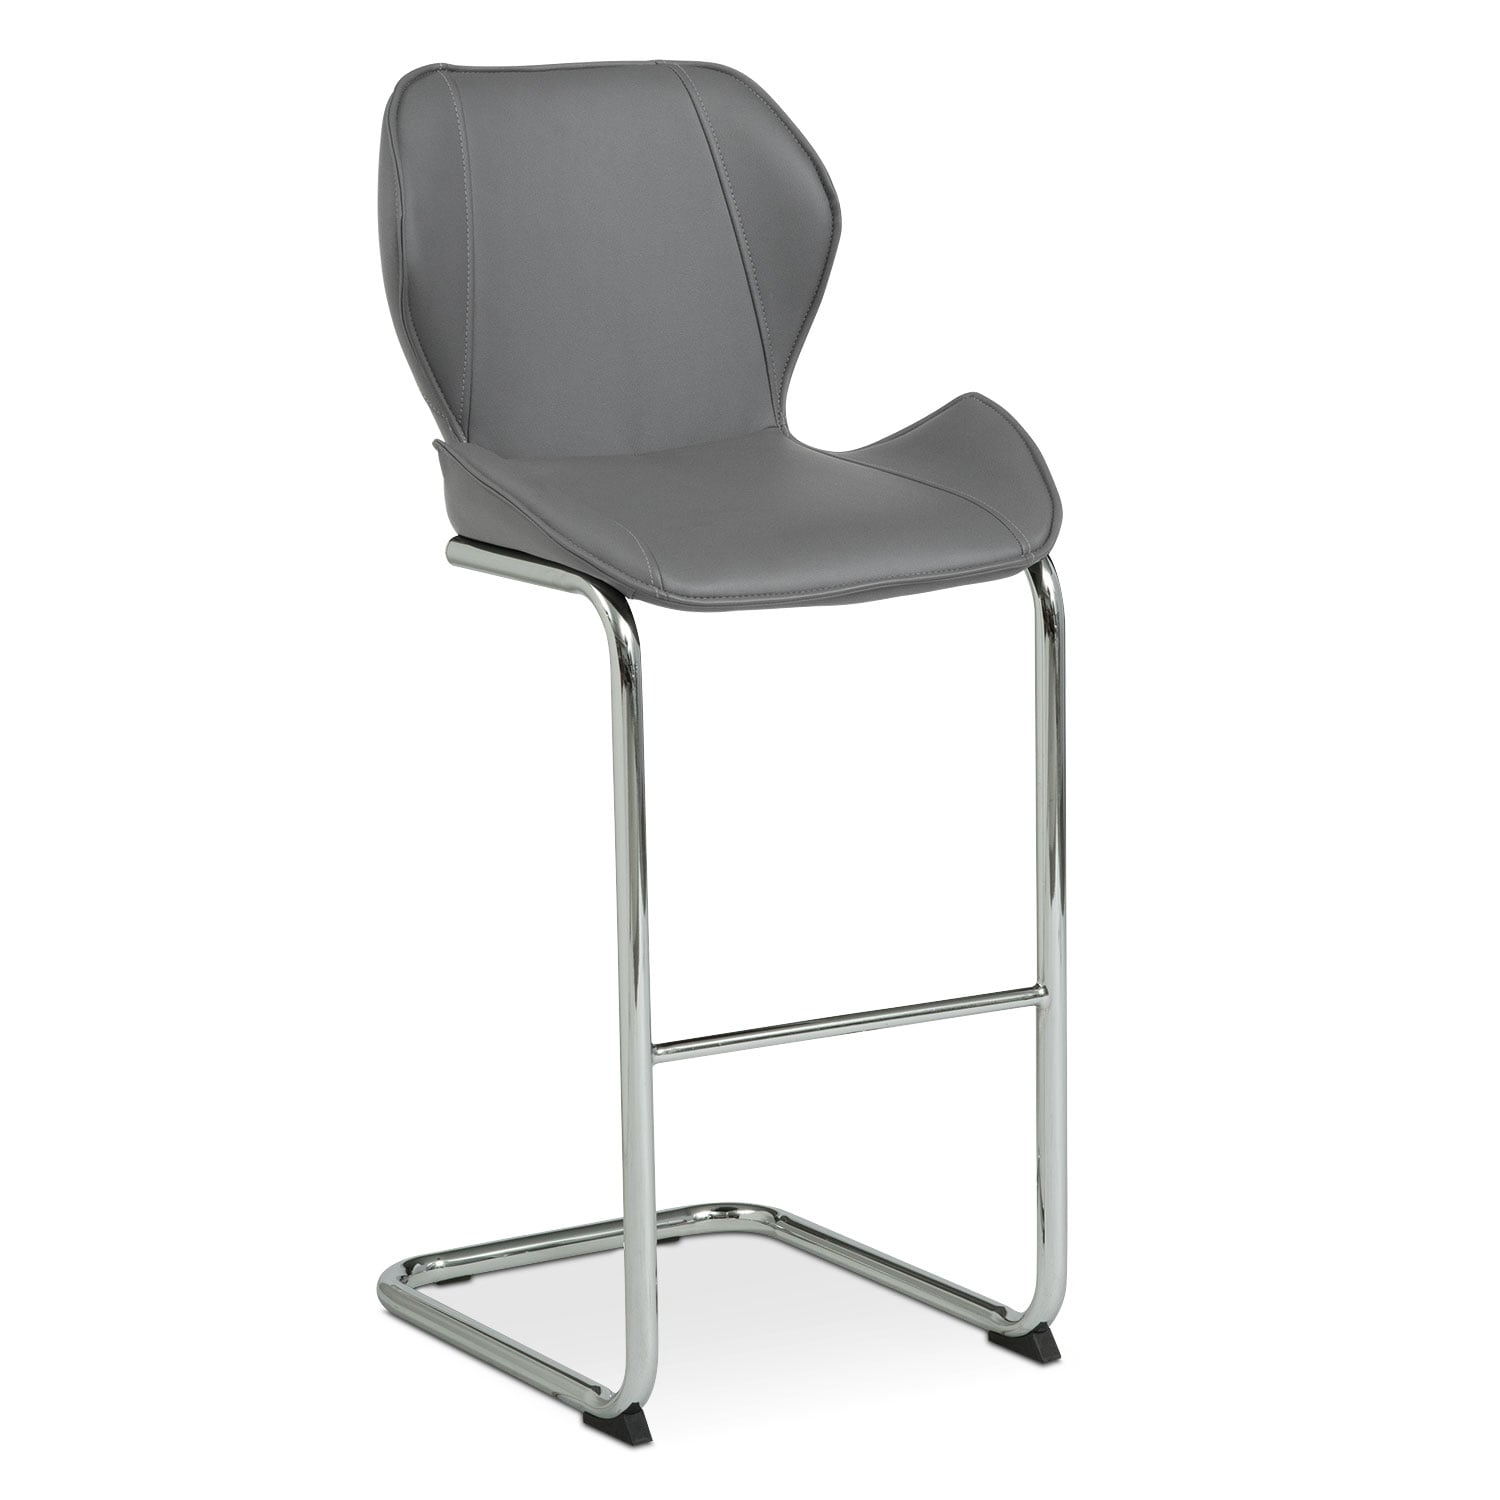 Dining Room Furniture - Metropolitan Barstool - Gray